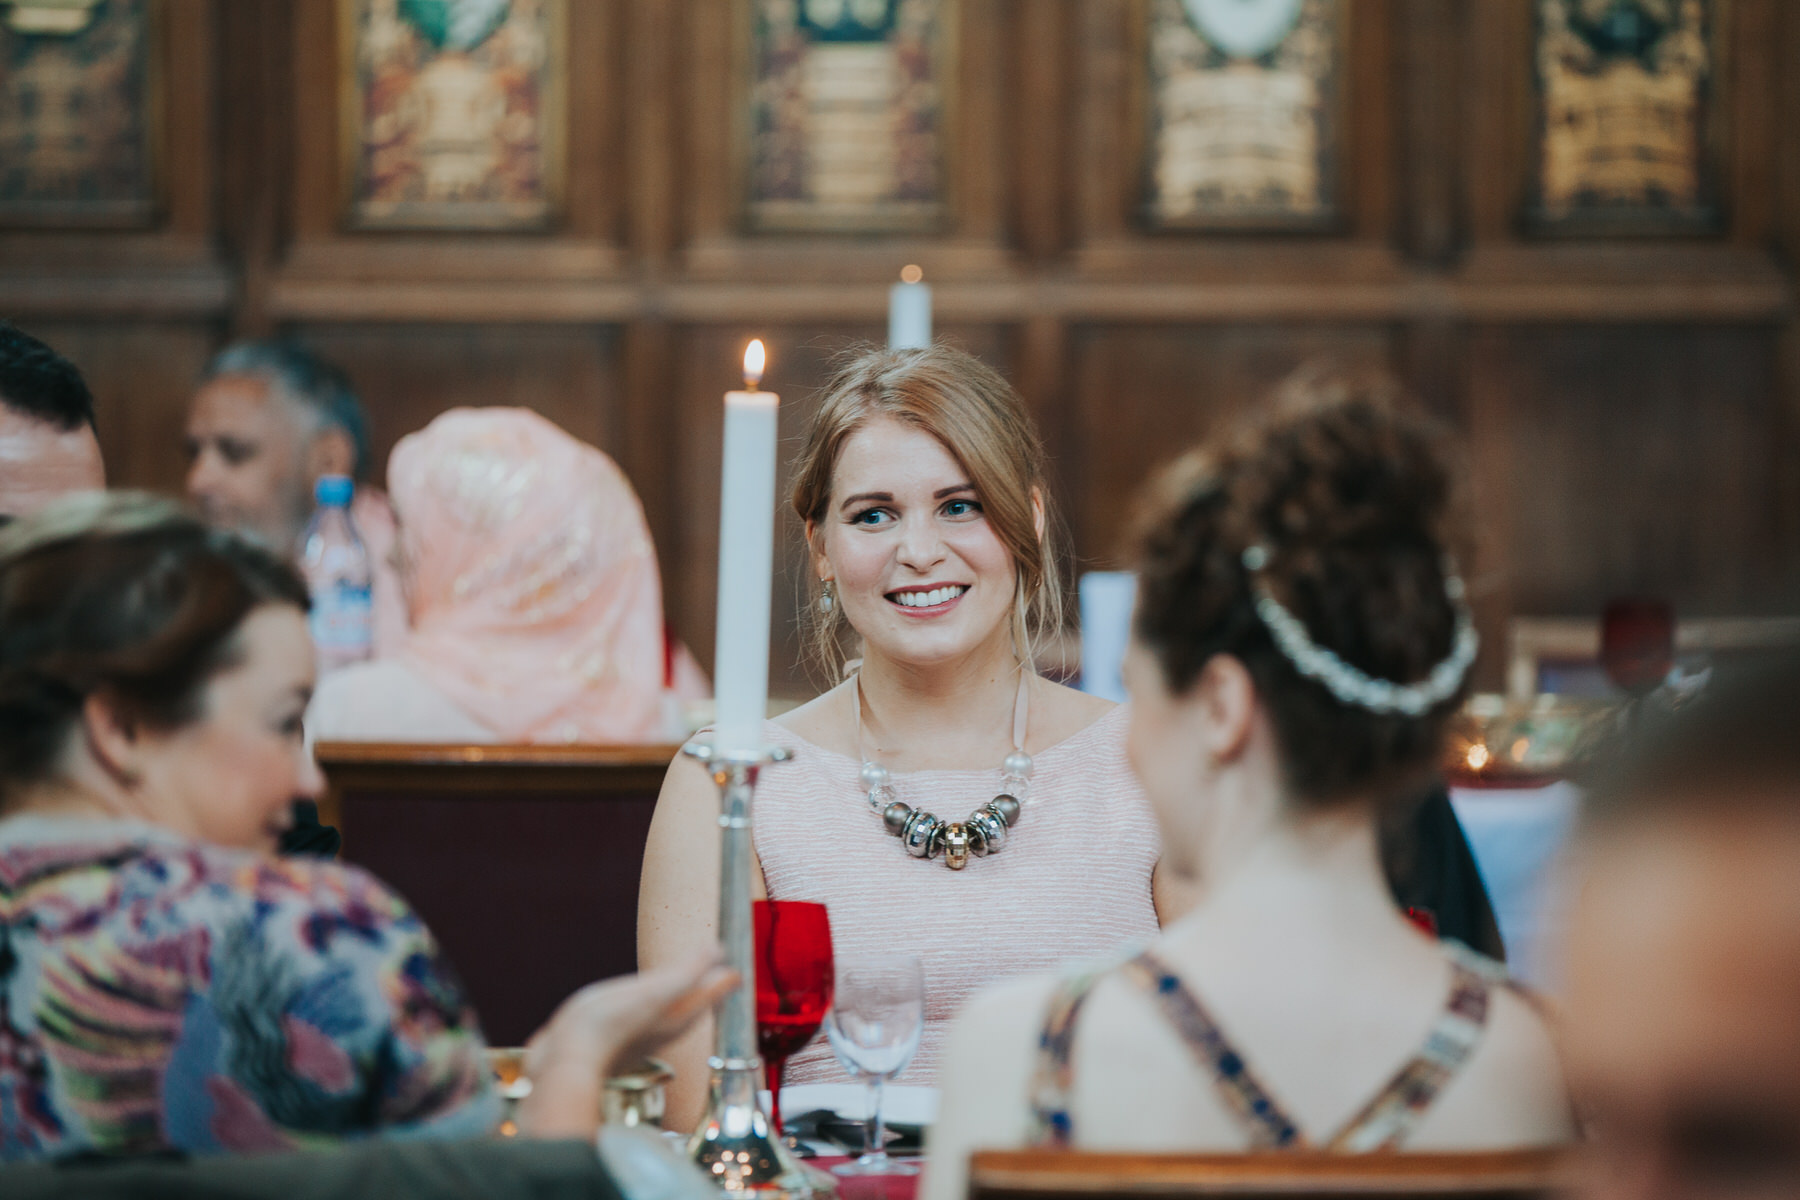 163-Anglo-Asian-Wedding-Middle-temple-reception-guest-reportage.jpg